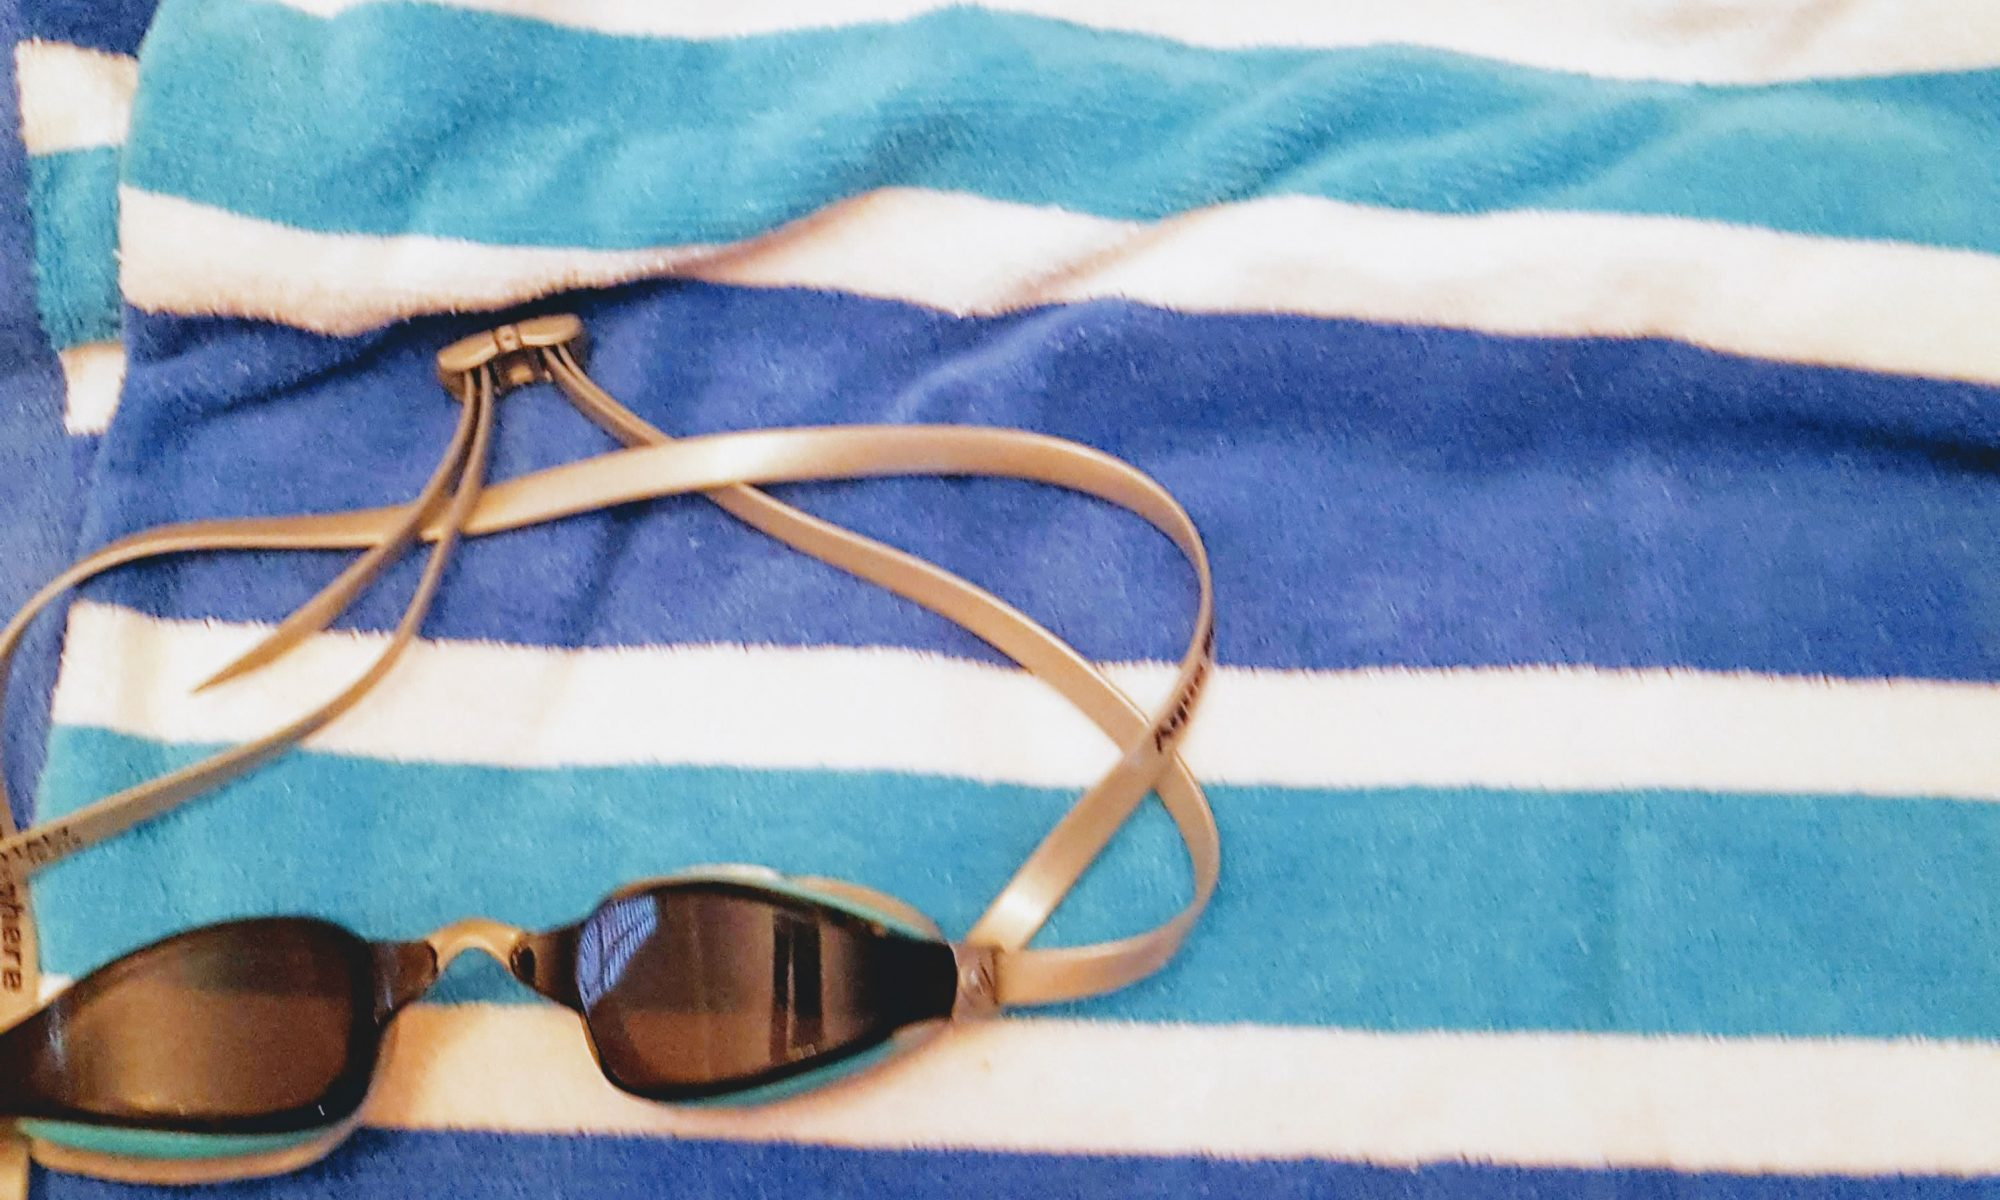 Photo of striped beach towel and swim goggles